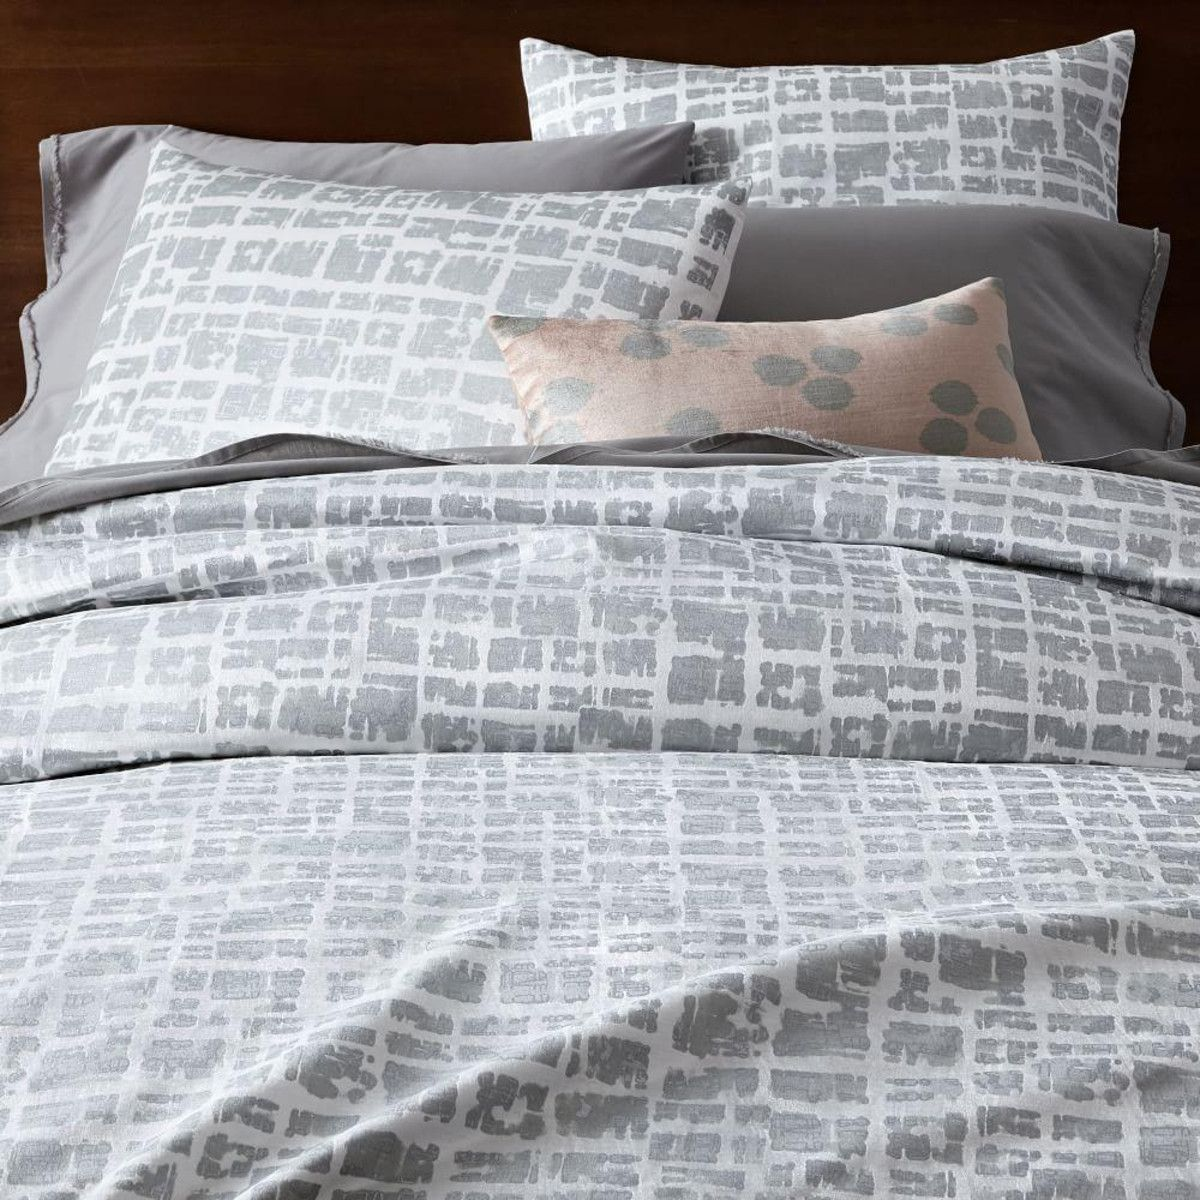 cheap frame duvet collection design raised pattern calm solid ideas luxury look large royal linen of designs white covers size turquoise bedding silver embroidered macys set queen duvets hotel home and king braided decorating piece cover full trim metallic quality